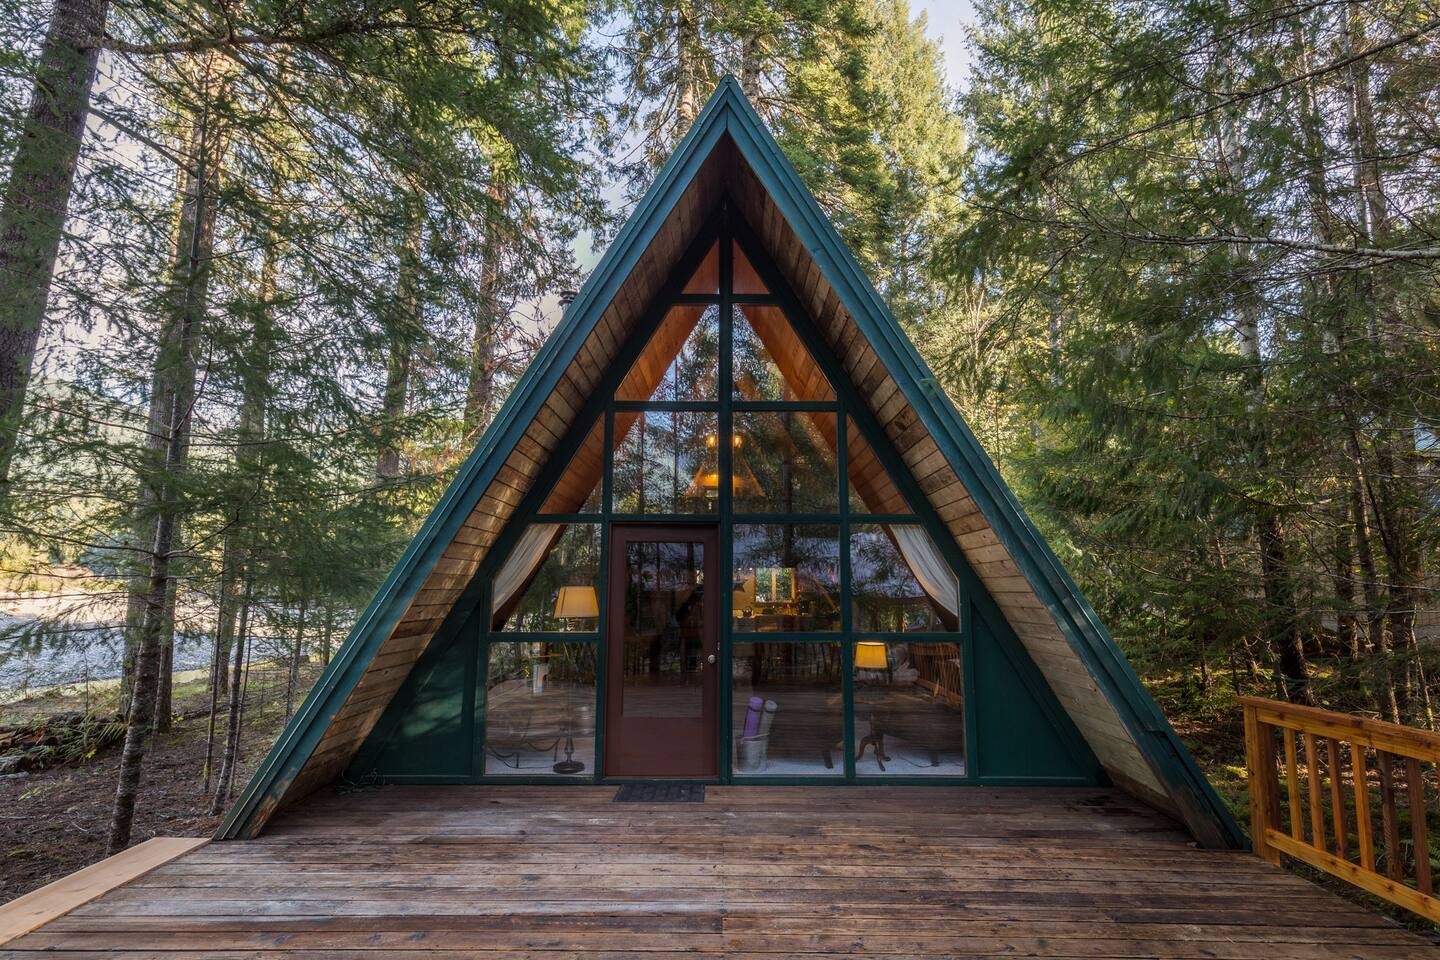 wide A-frame wooden cabin with green border and glass windows surrounded by trees